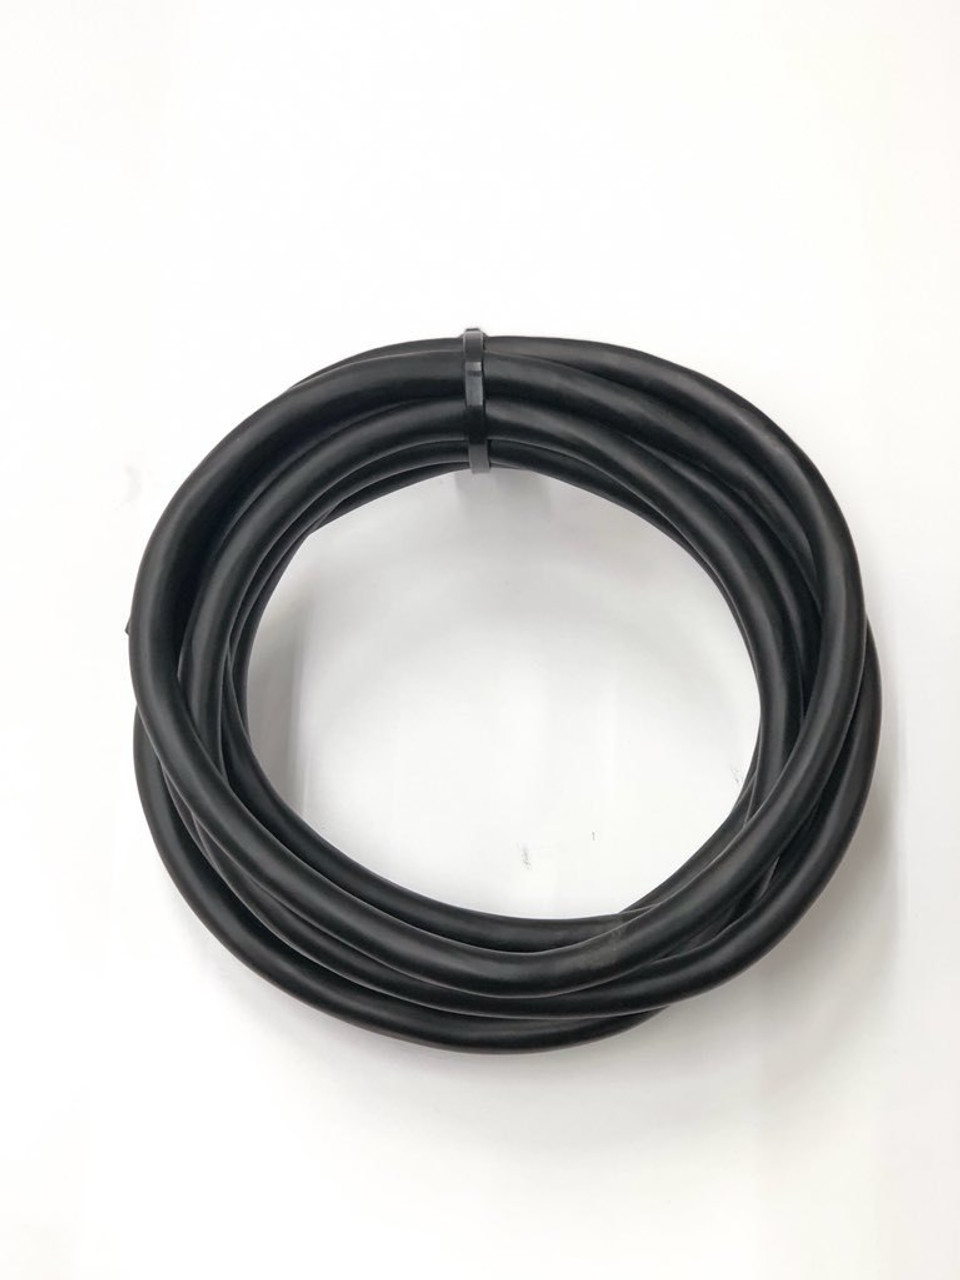 9 WIRE SWITCH CORD (SOLD BY THE FOOT)